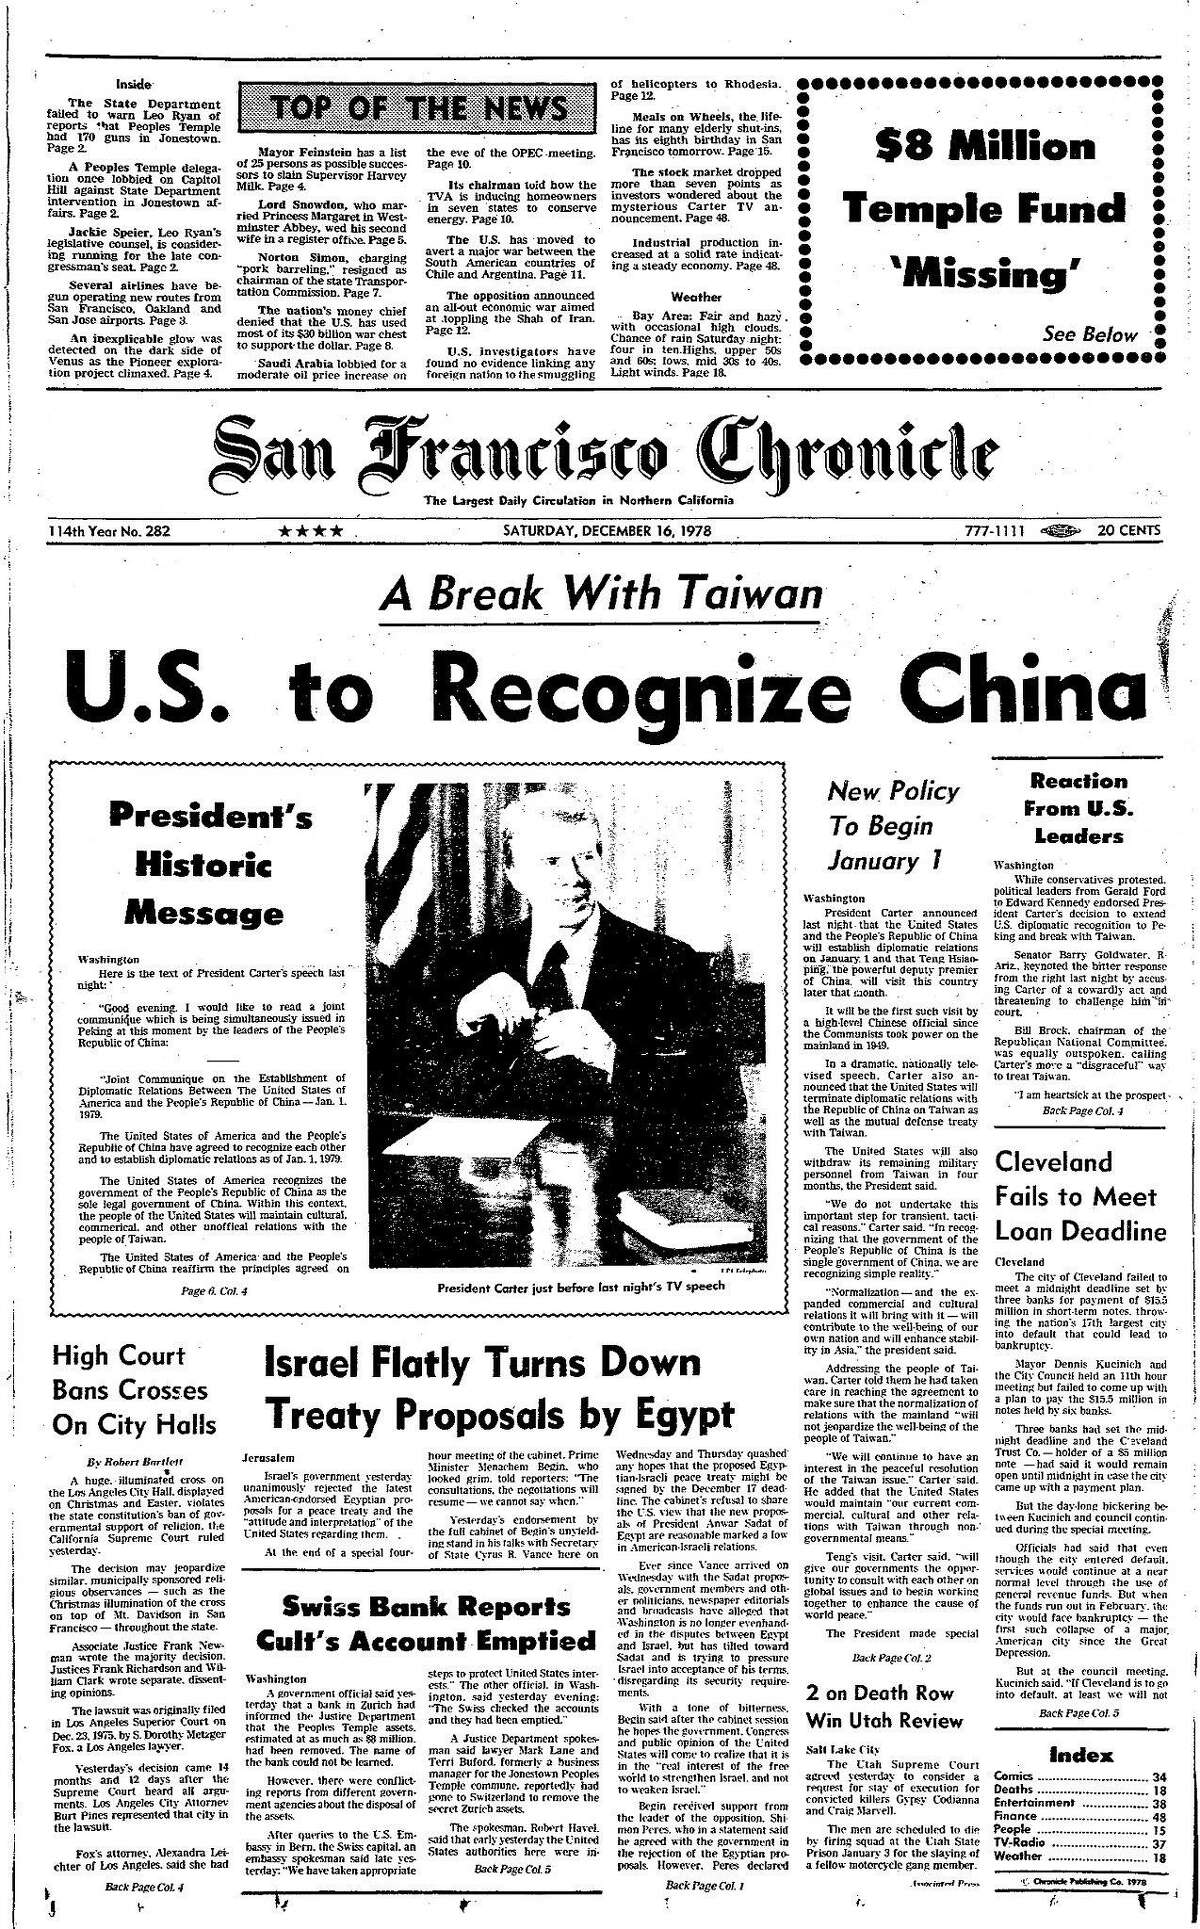 Historic Chronicle Front Page December 16, 1978 The United States to recognize mainland People's Republic of China Chron365, Chroncover